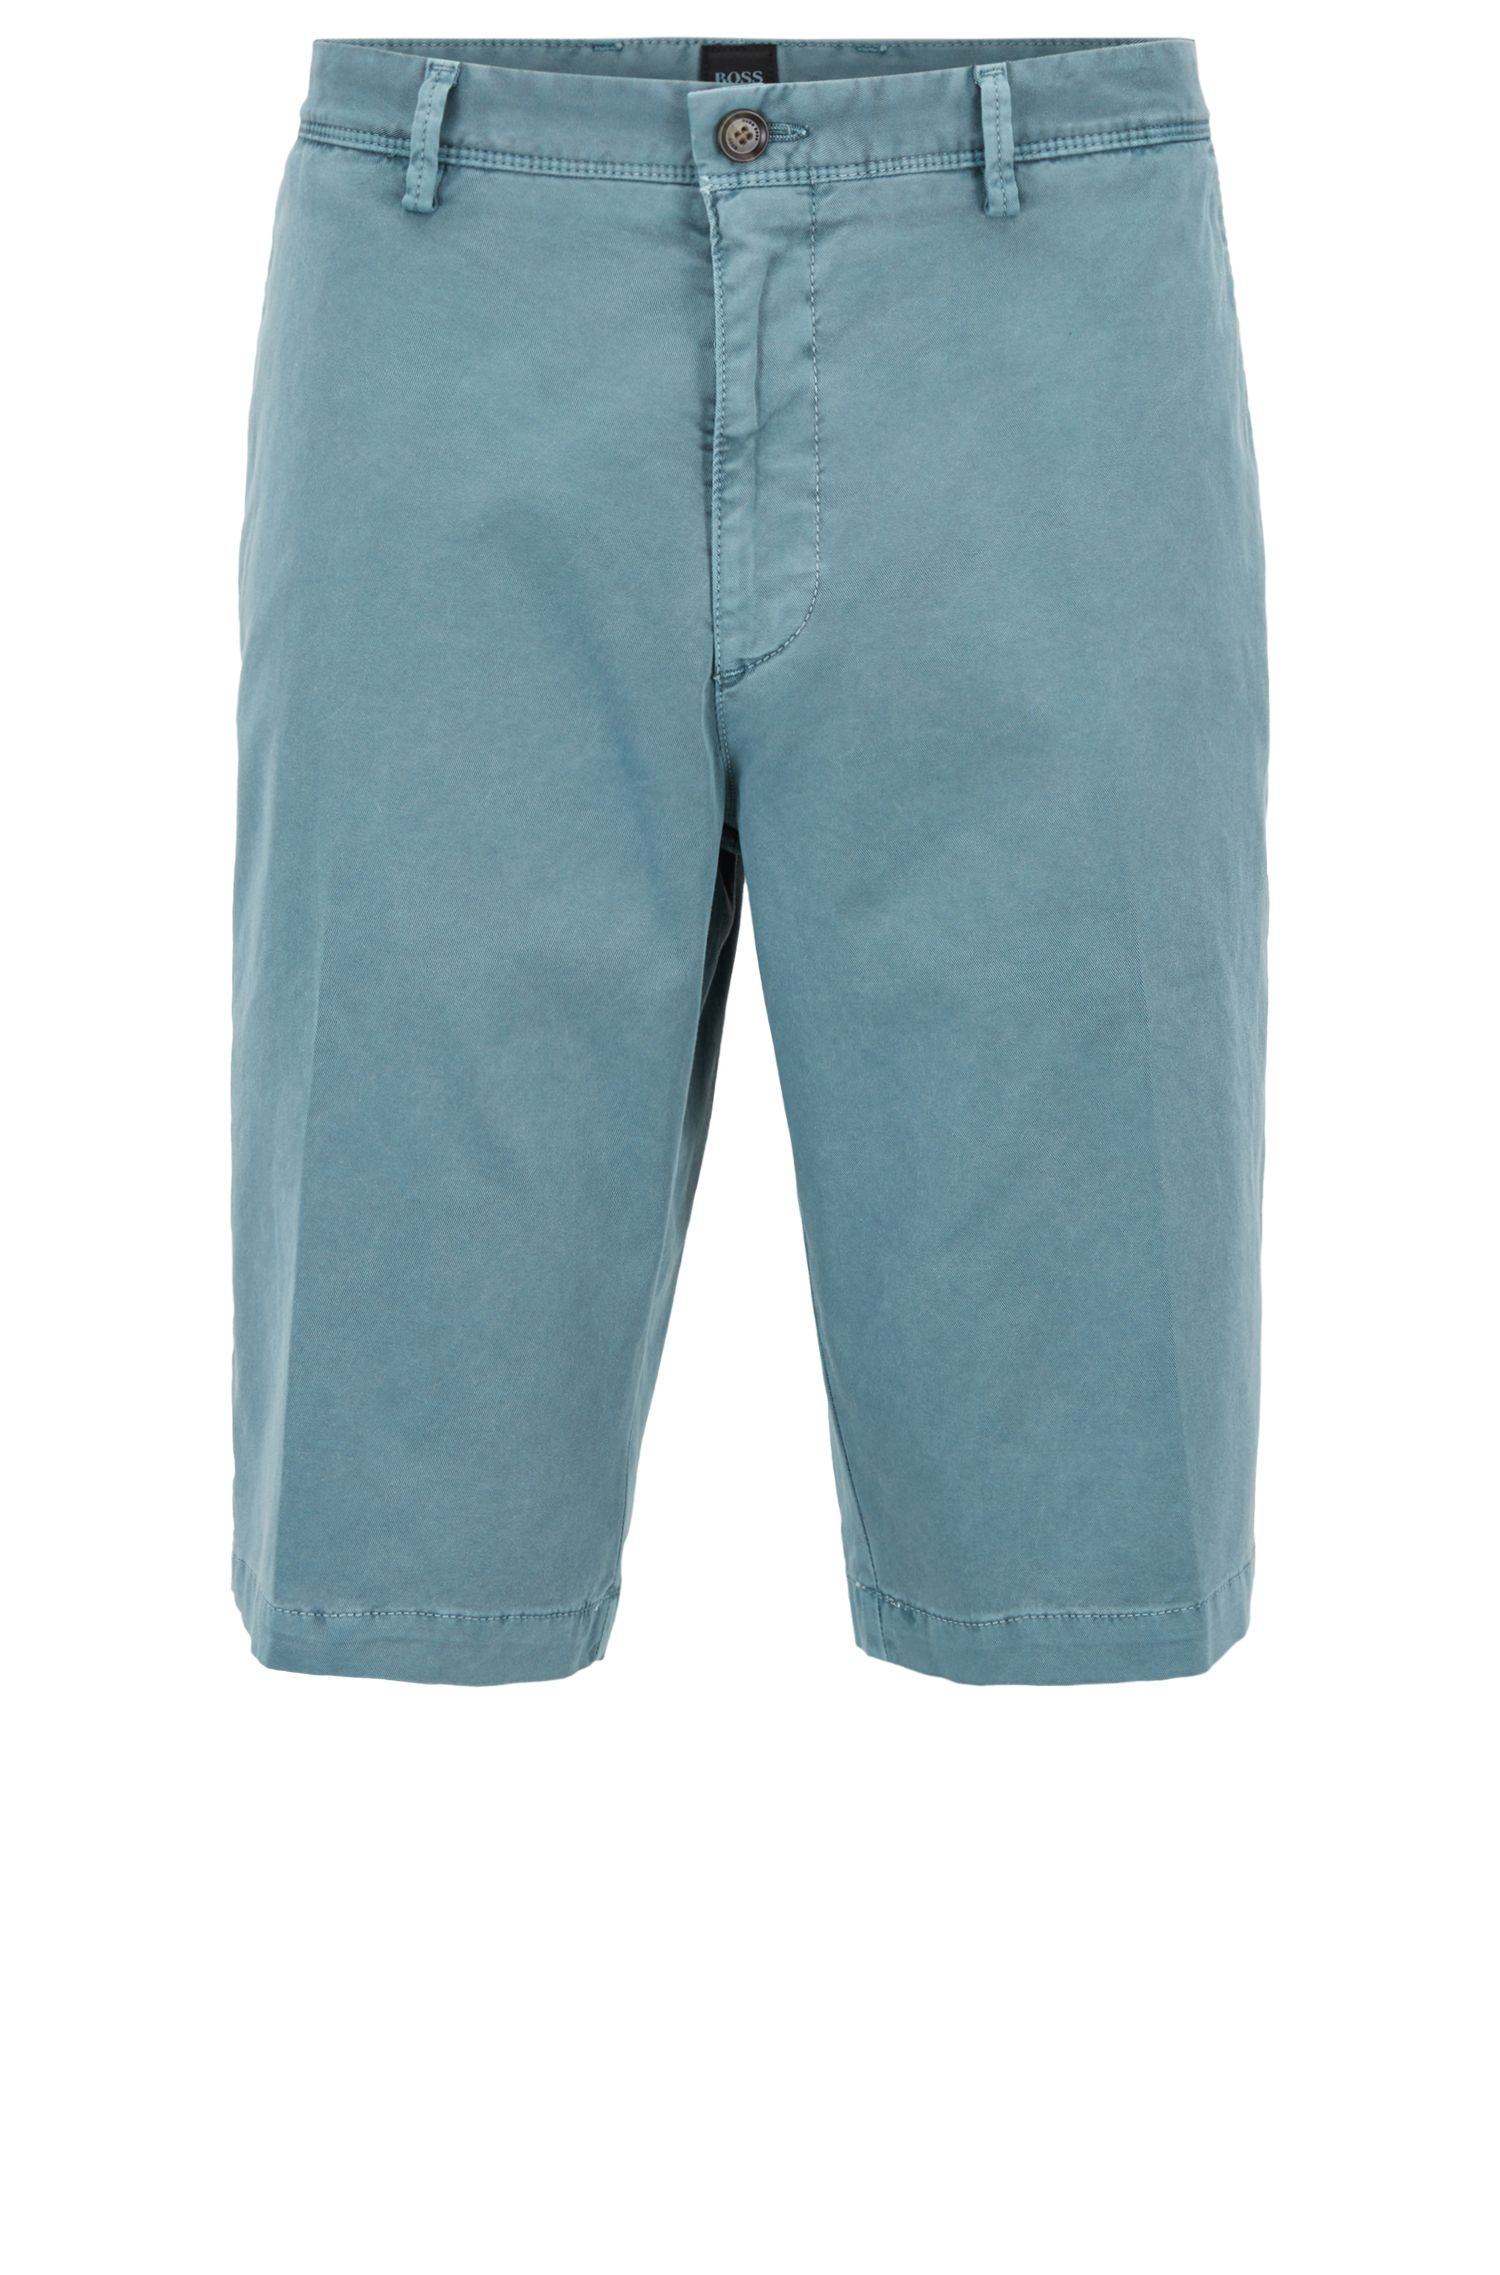 Pigmentgefärbte Regular-Fit Chino-Shorts, Dunkelgrün